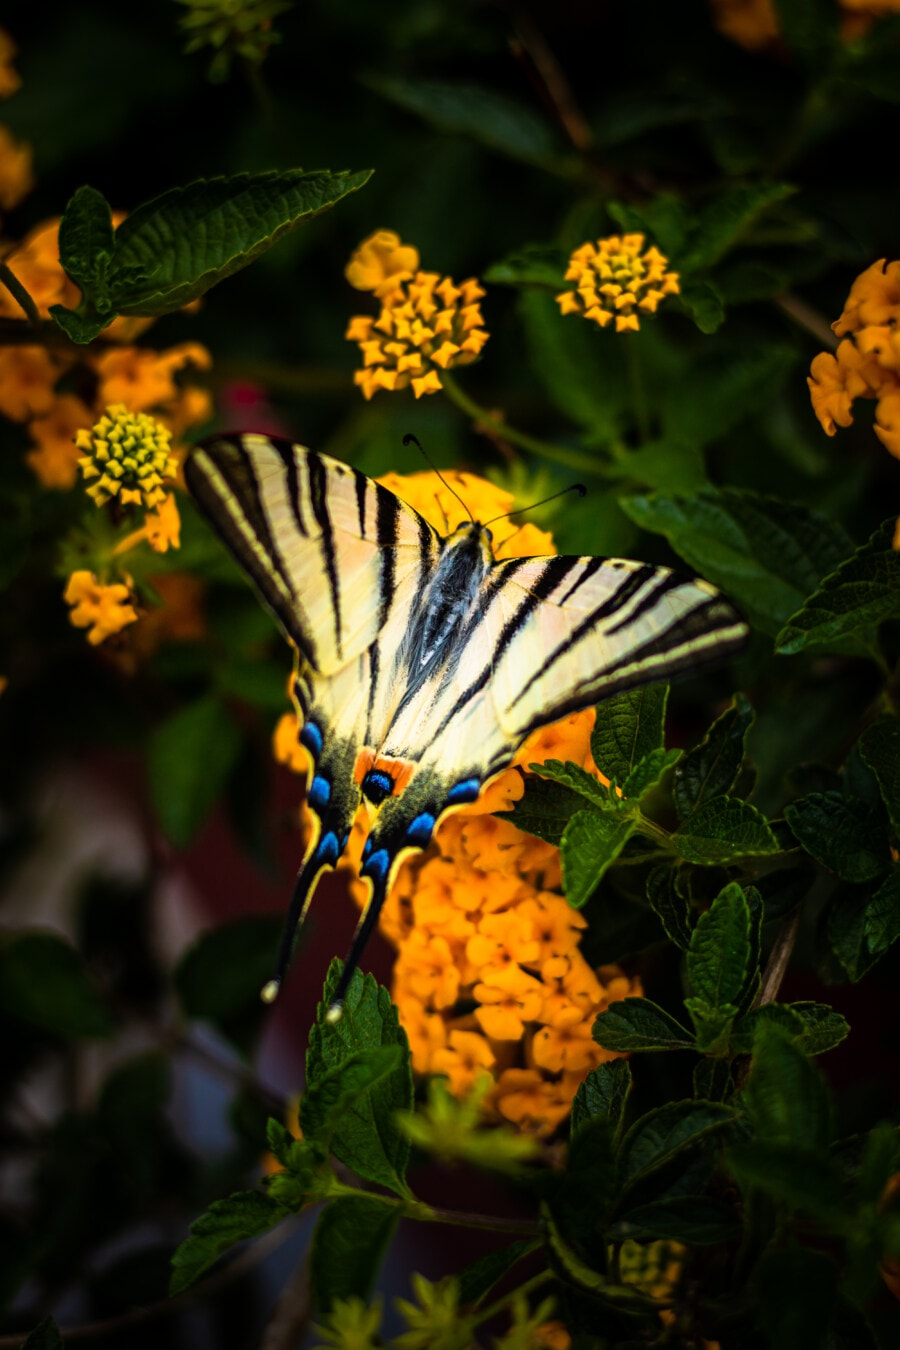 butterfly flower, butterfly plant, butterfly, flower, leaf, nature, insect, shrub, yellow, summer